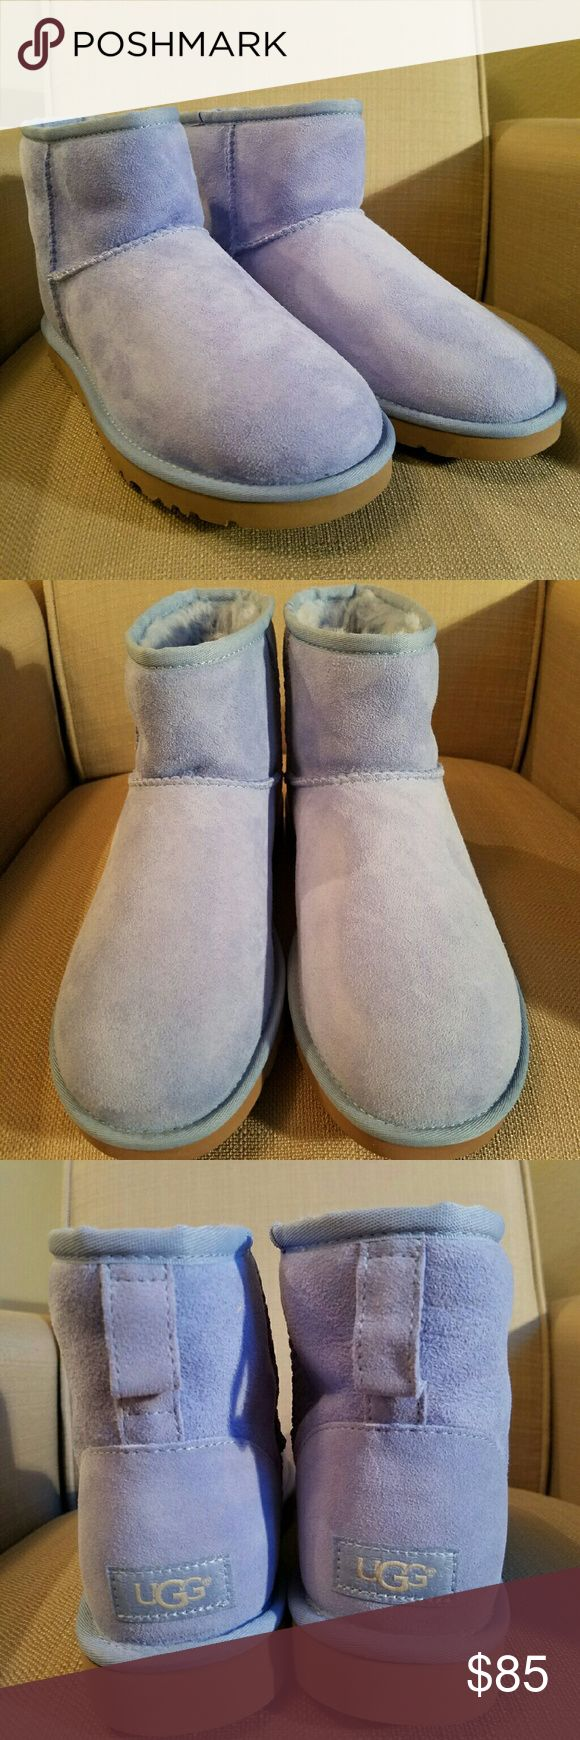 Baby blue UGG Australia boot mini UGG Classic Mini Women's Twinface Sheepskin Classic Boots in Multi. : Ugg Boots for Women - Classic Mini Boots by UGG Australia. One of our most beloved silhouettes, the Classic Mini is an icon of casual style. This boot delivers signature UGG comfort with luxurious Twinface sheepskin, a plush wool insole, and a lightweight, flexible outsole.  Comes in Original UGG box !  COLOR BABY BLUE .  Sorry about some of photos off on the color a little due to…